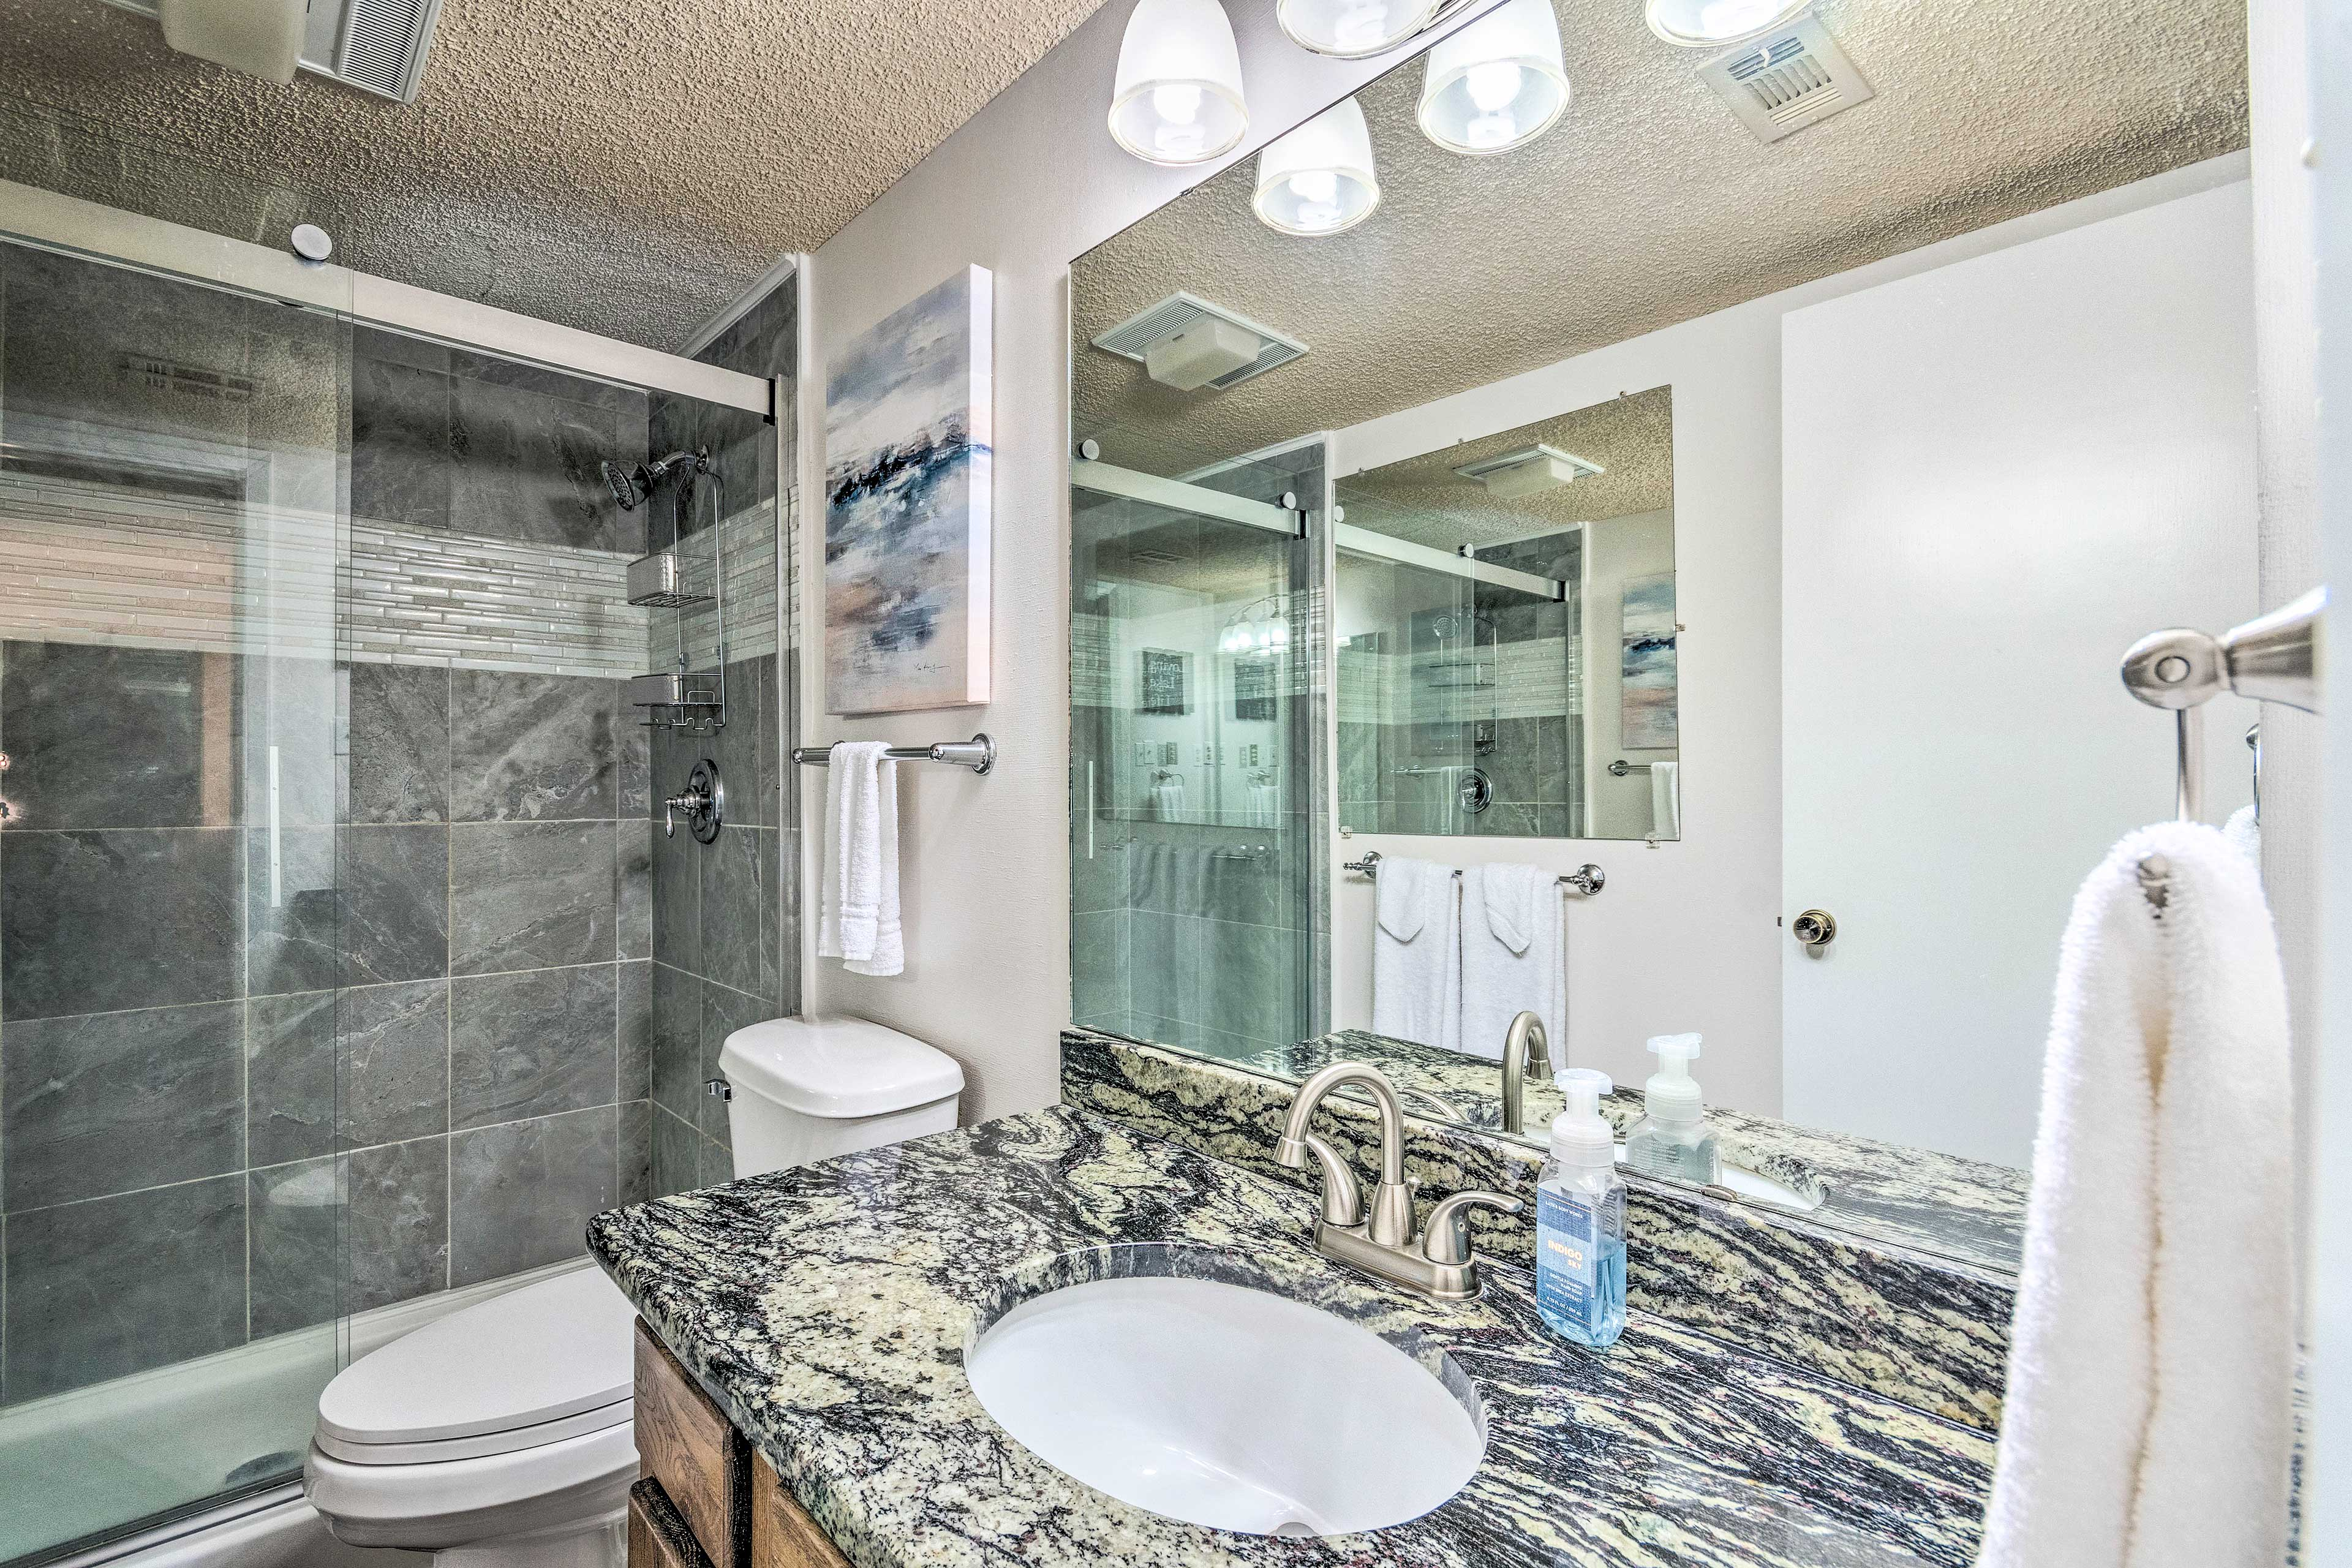 Recently remodeled, this full bath contains brand new fixtures.